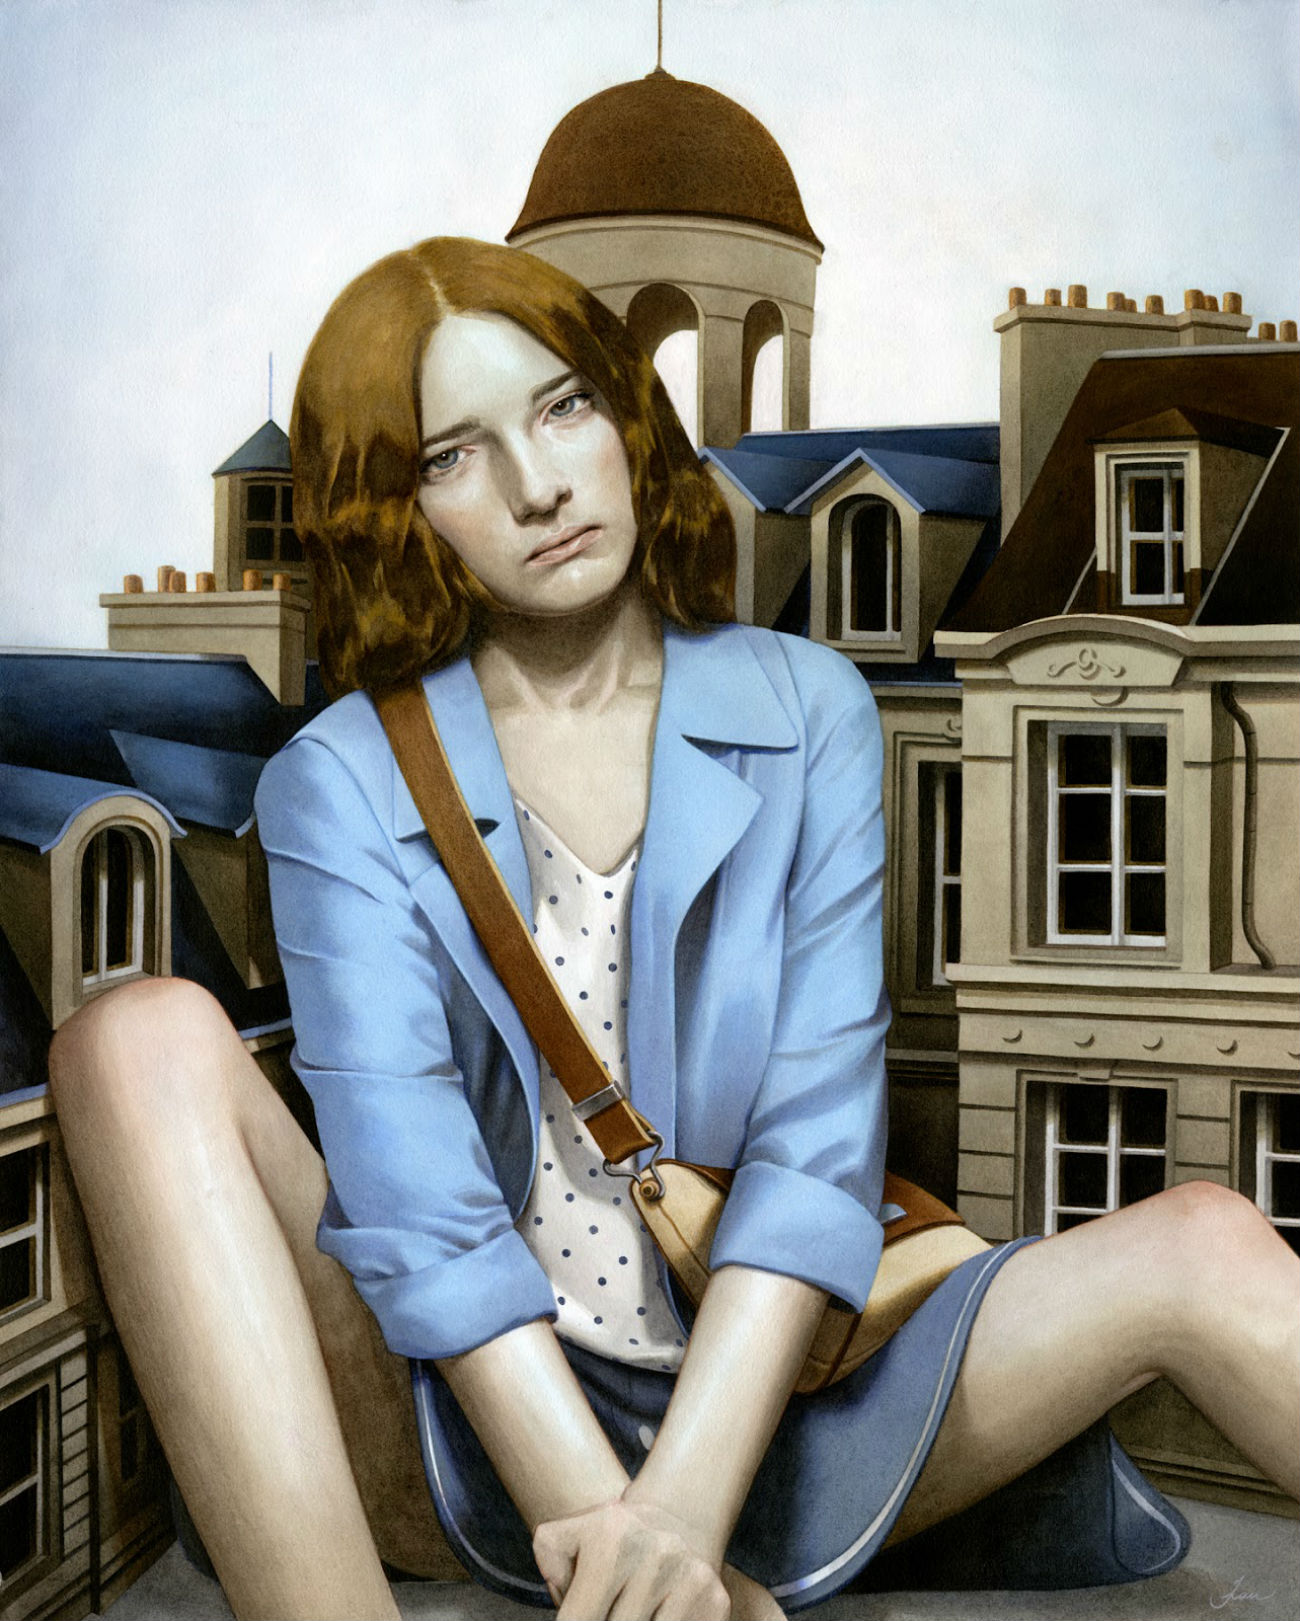 tran nguyen giant girl painting